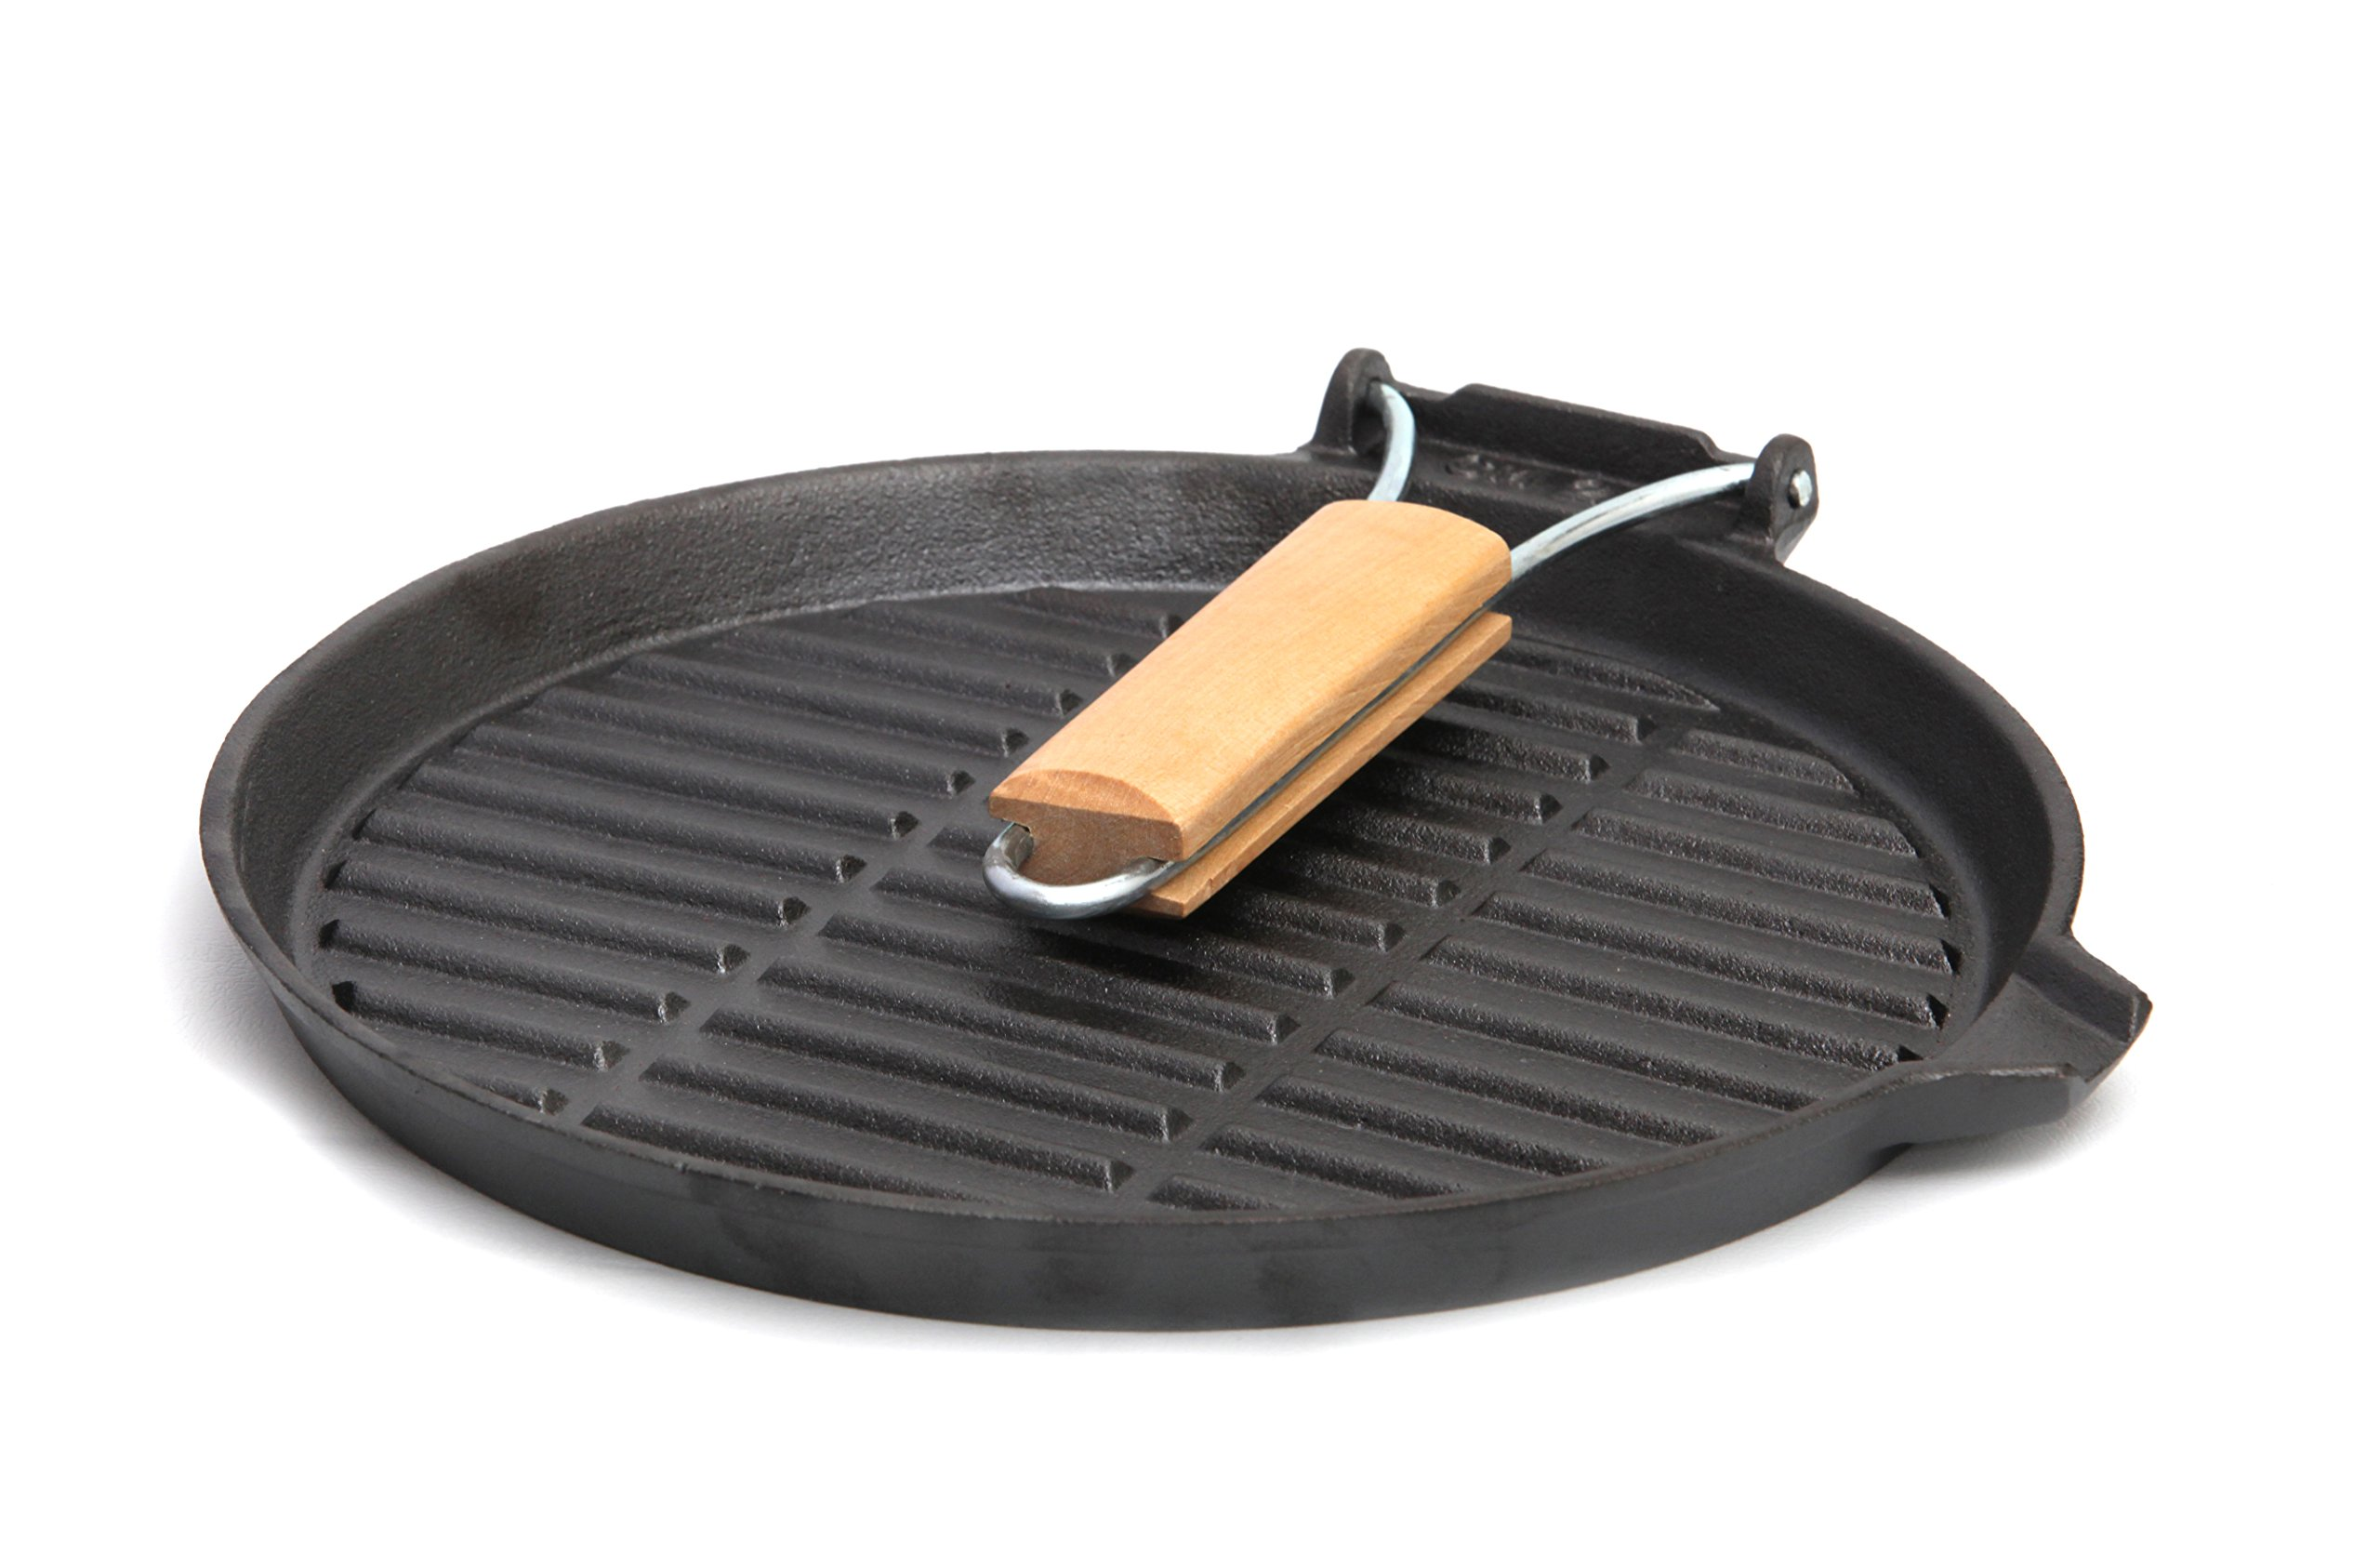 GURO Cast Iron Pre-Seasoned Round Griddle Fry Pan with Wooden Handle, 9.8''